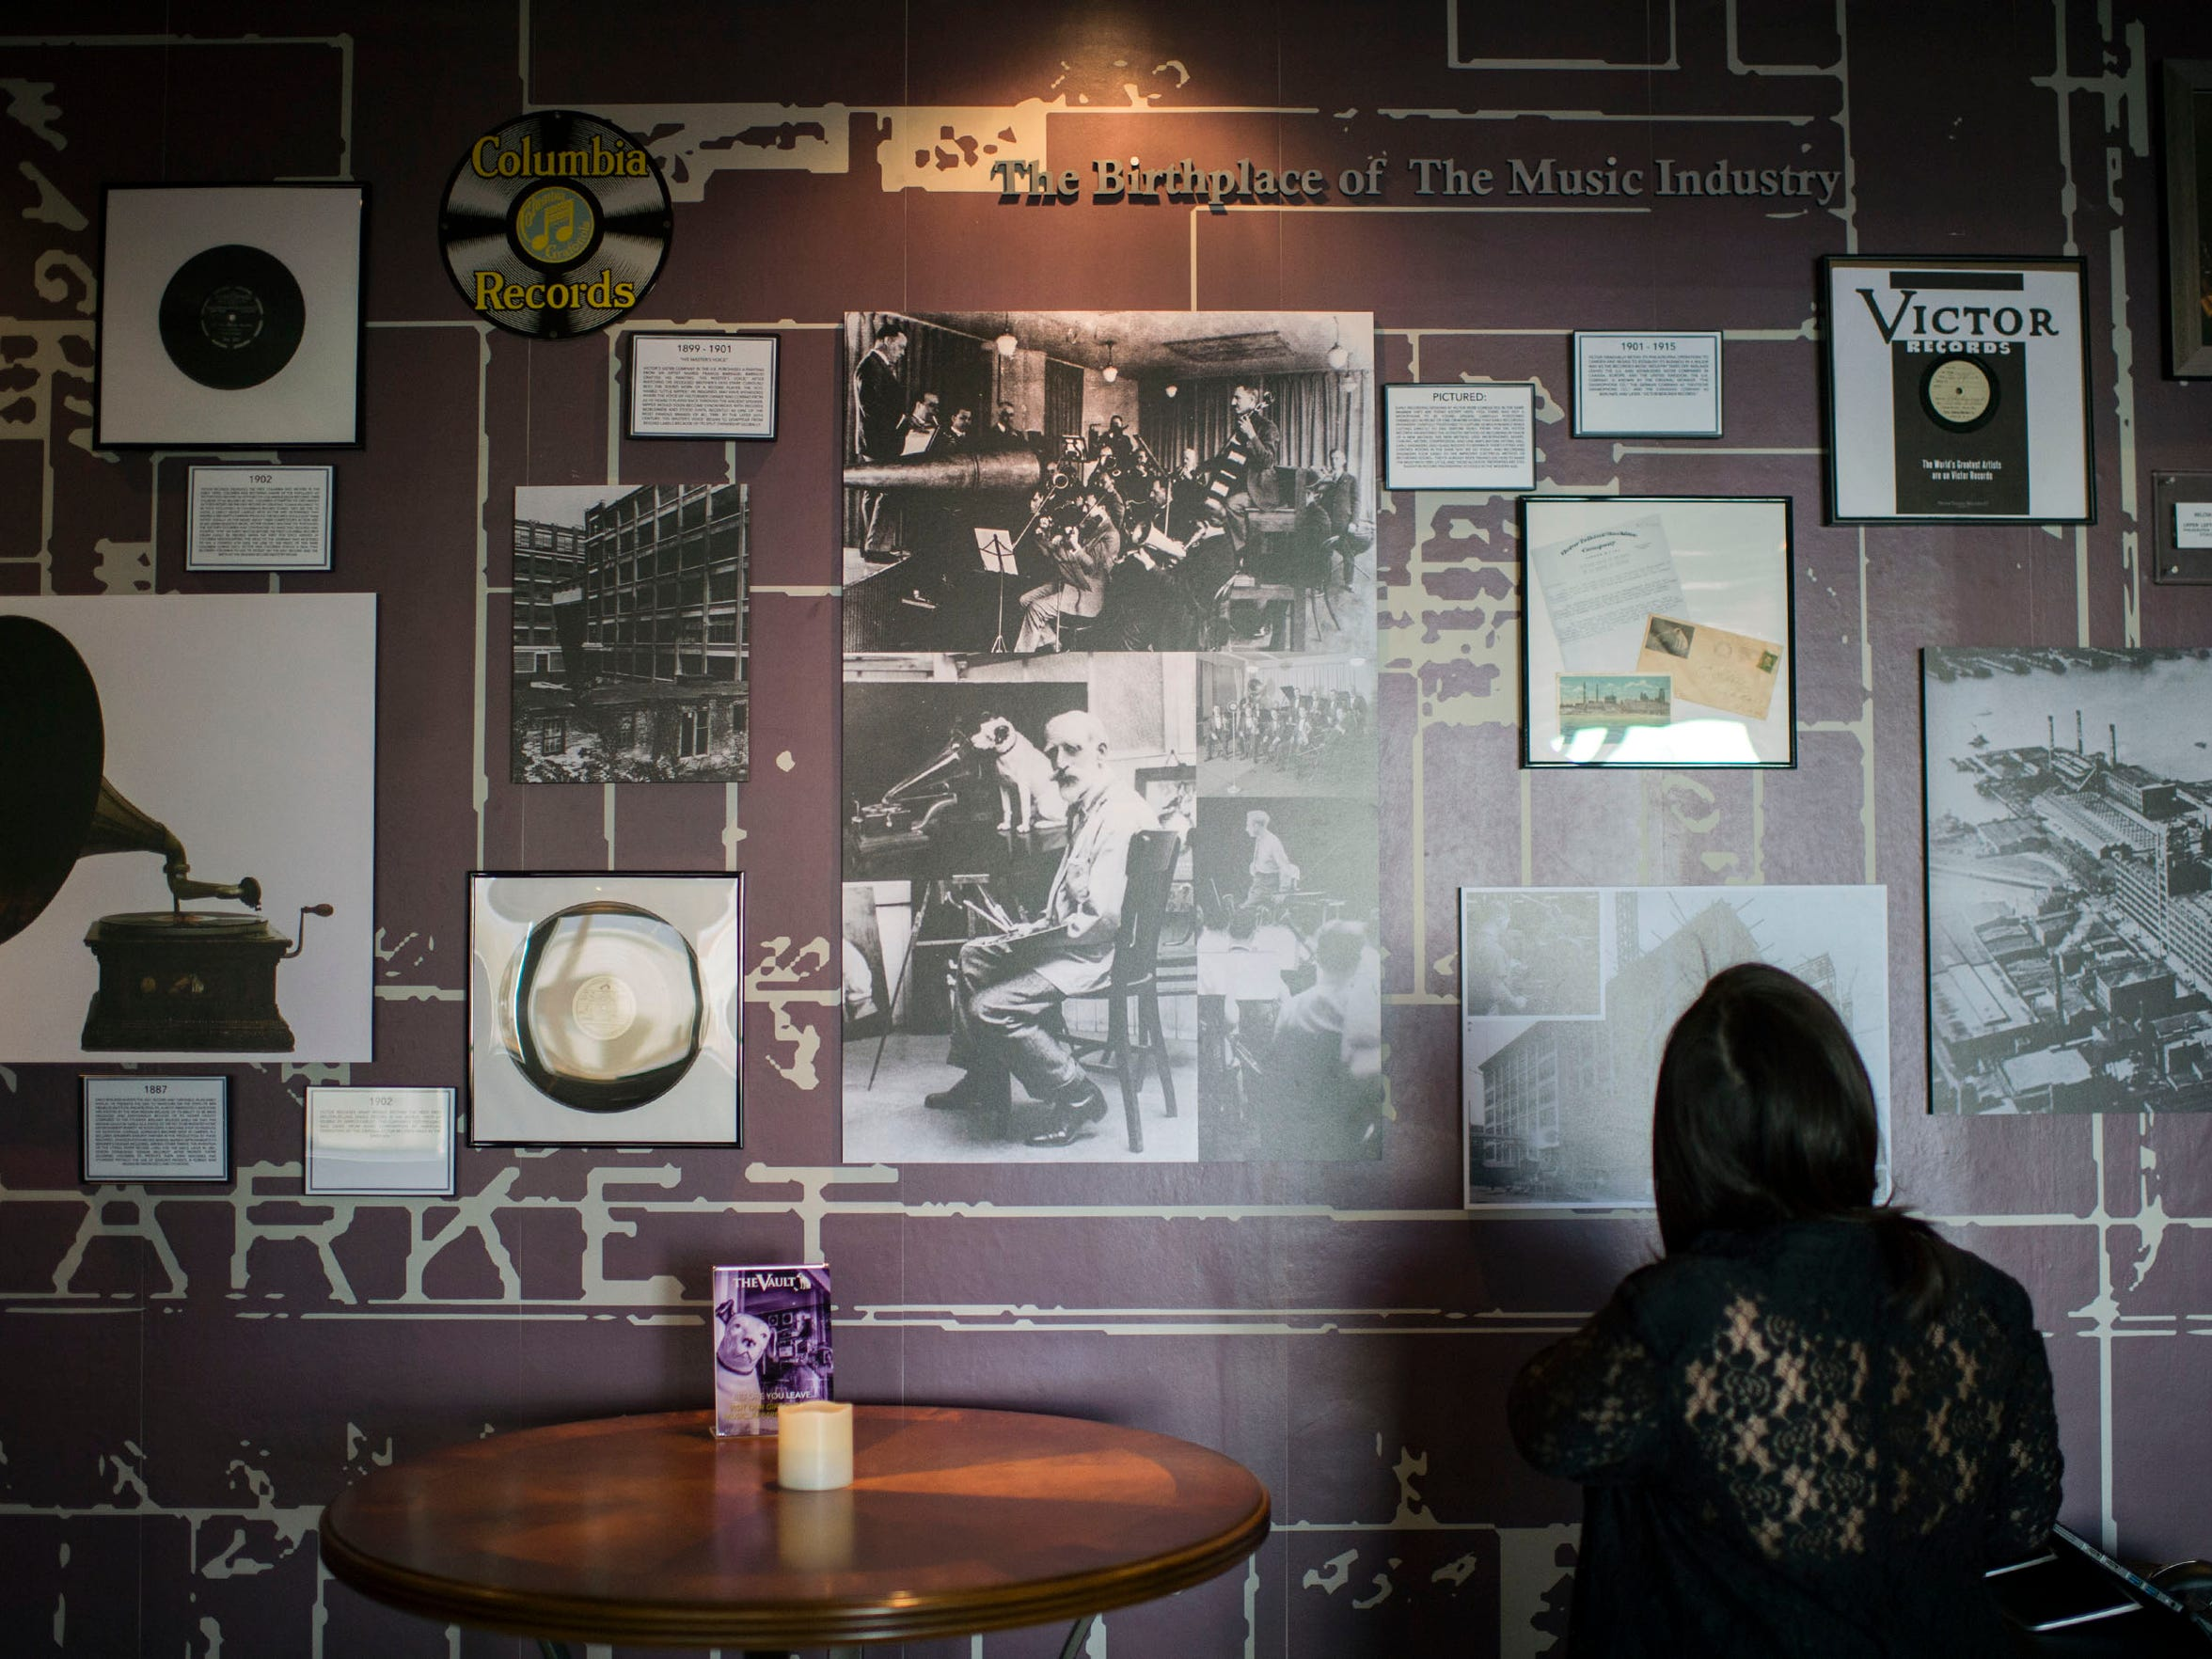 The Vault doubles as a miniature museum paying tribute to the history of the recording industry.